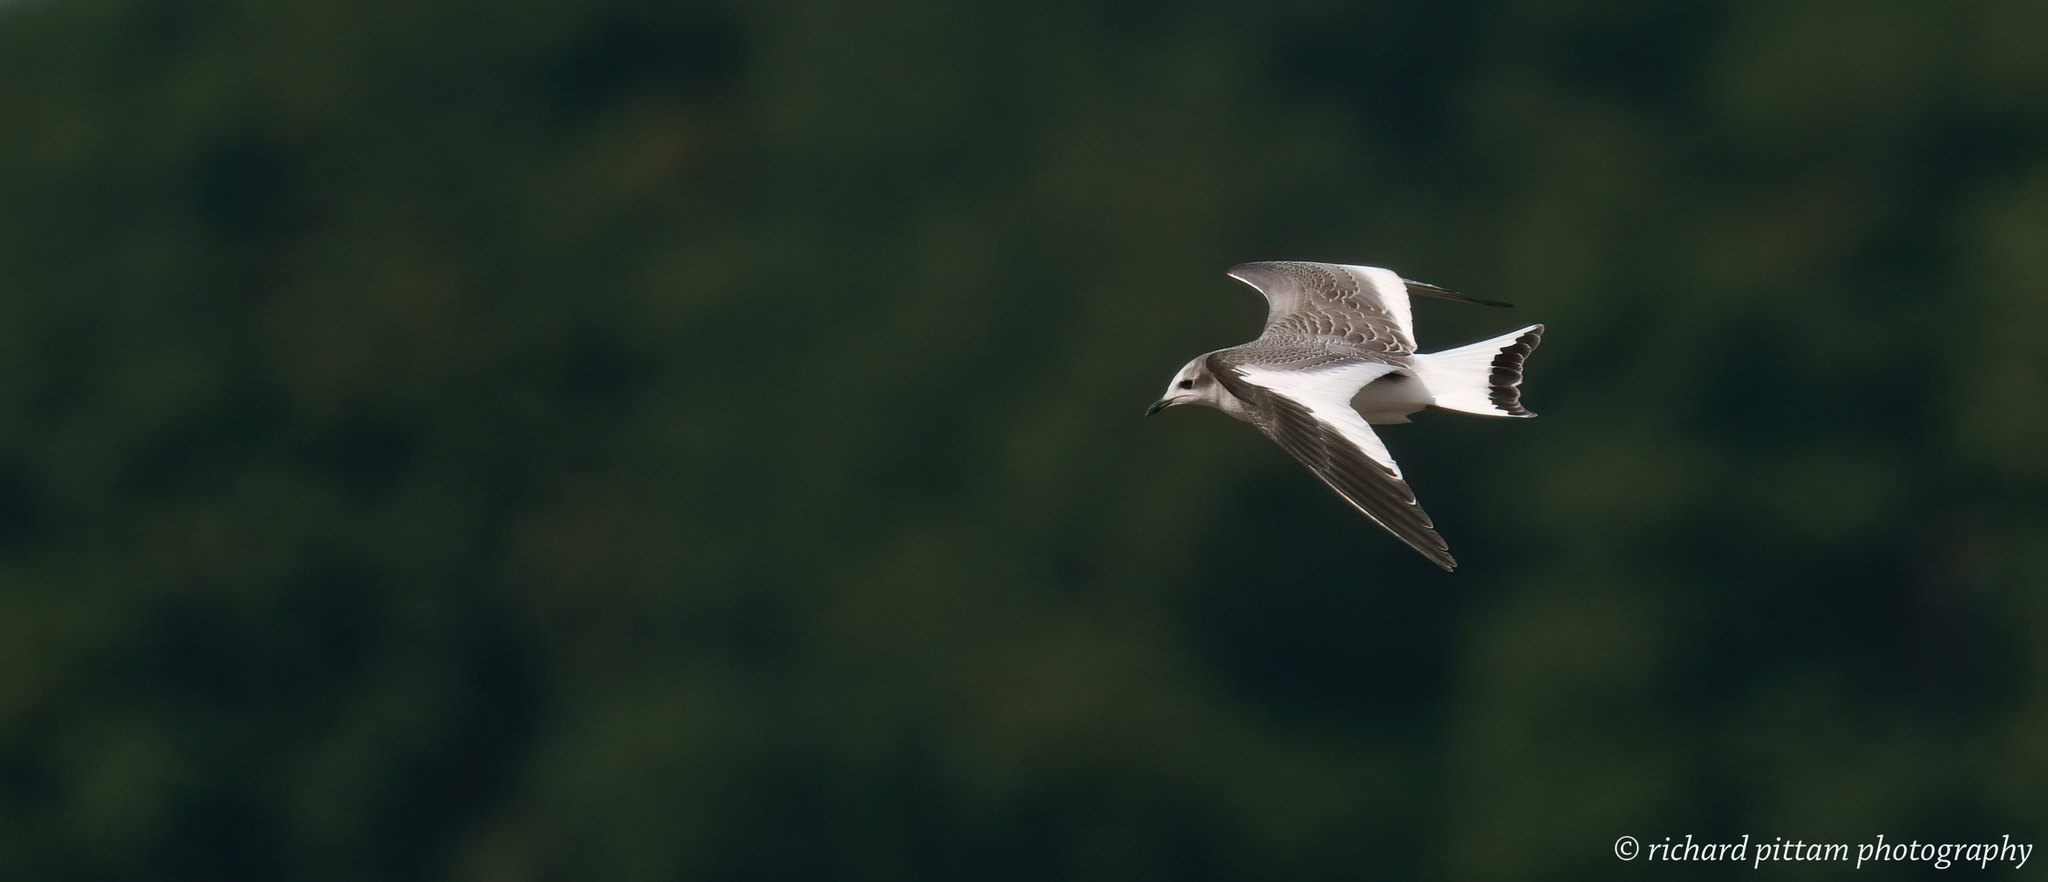 Juvenile Sabine's Gull [Xema sabini] - a stunning gull. However, a bad heat haze day - solution - get up earlier!